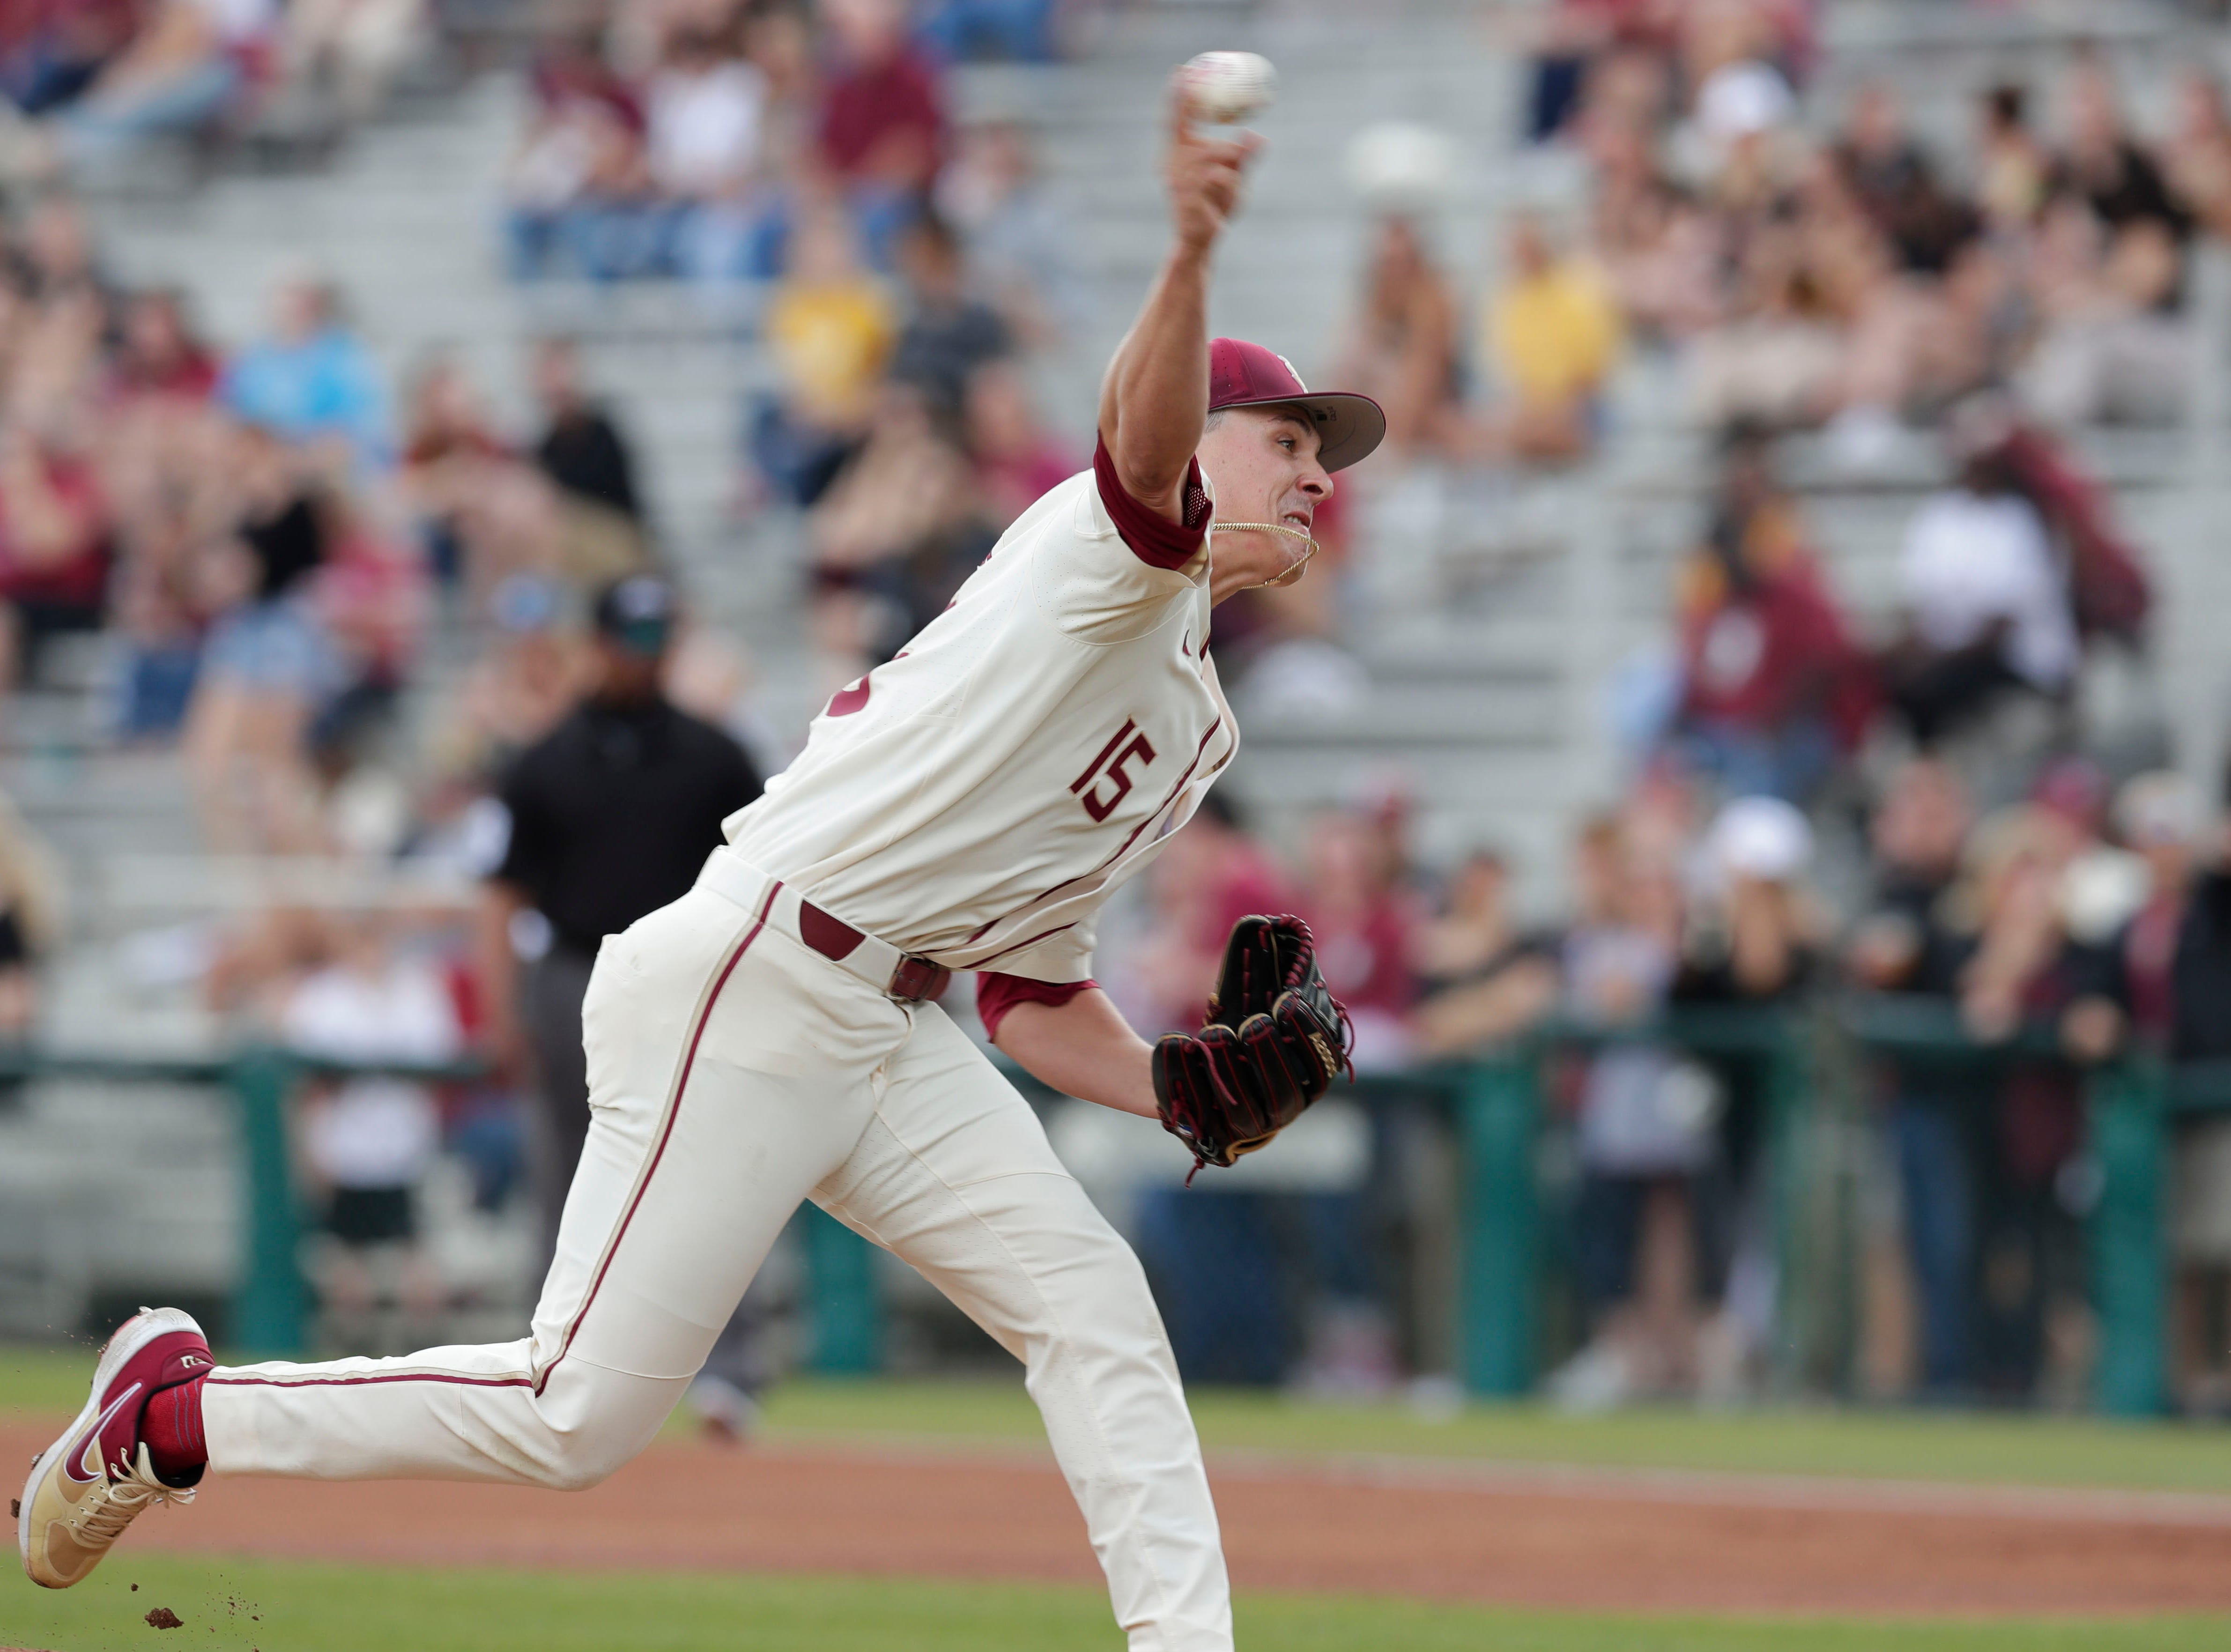 Florida State Seminoles right handed pitcher CJ Van Eyk (15) pitches to the batter as the Florida State Seminoles host the Maine Black Bears for the second game of the series, Saturday Feb. 16, 2019.